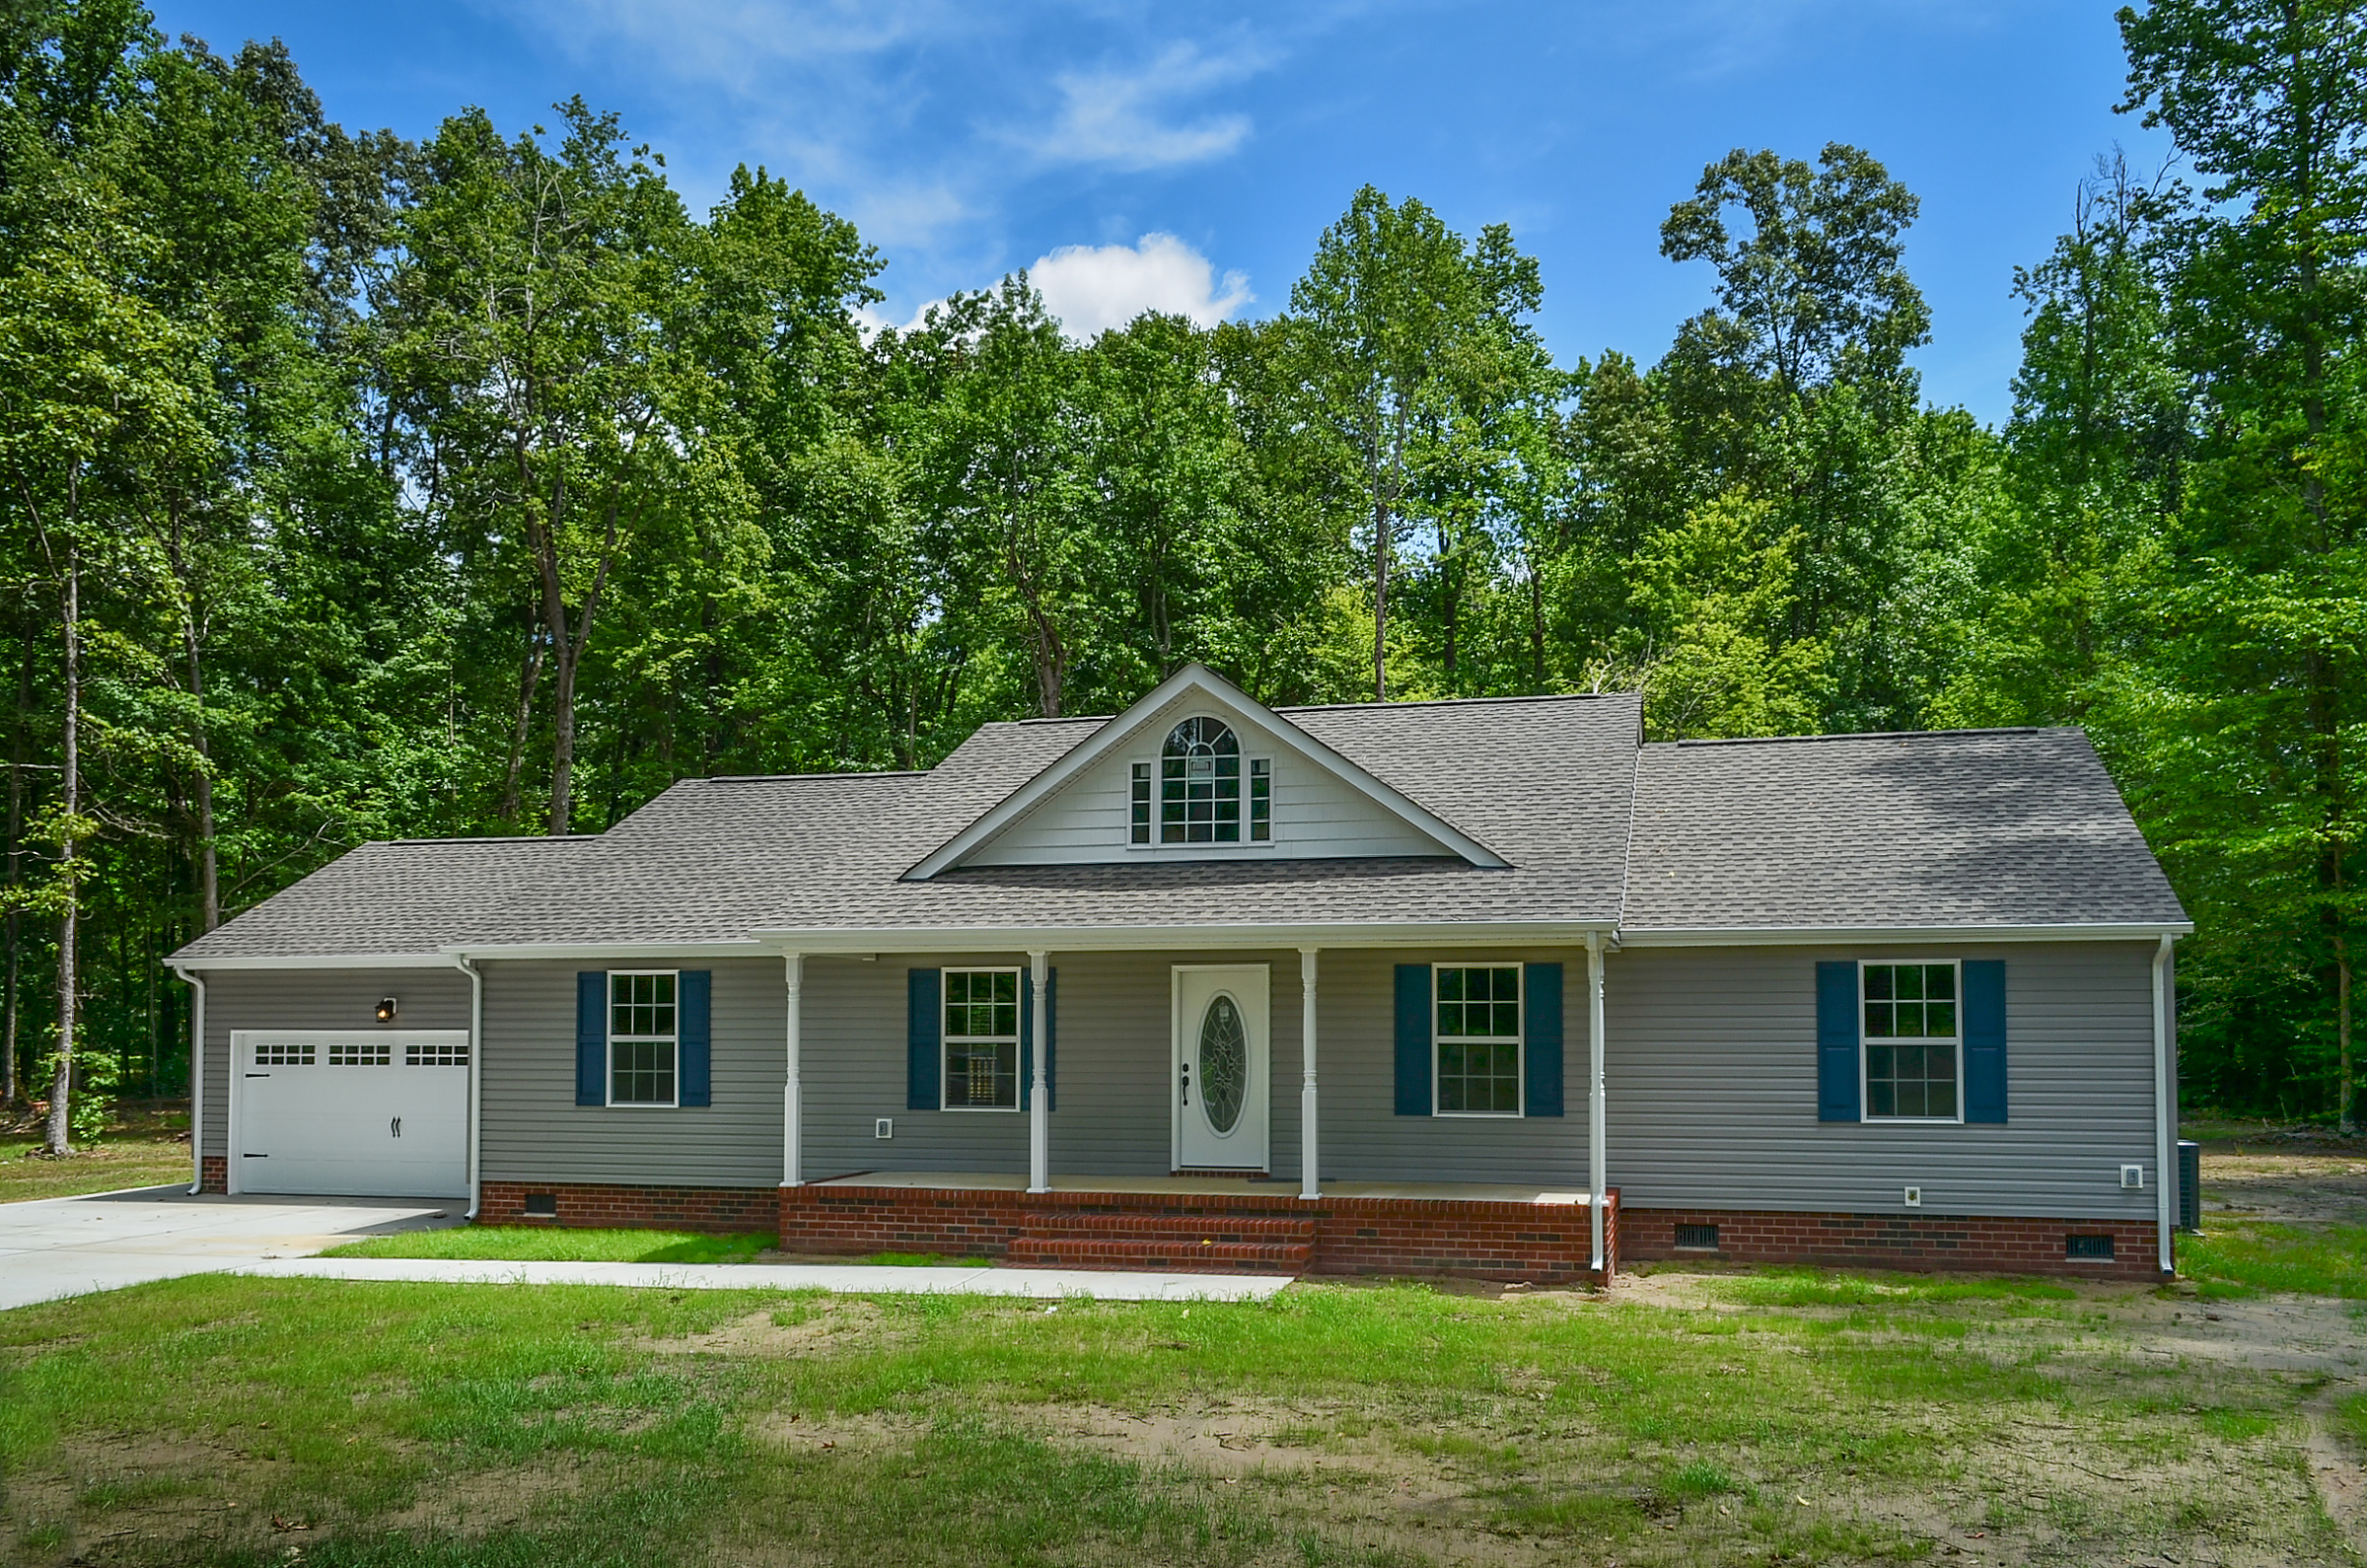 2989 CAROLINA RD - NEW CONSTRUCTION ON 1+ ACRES